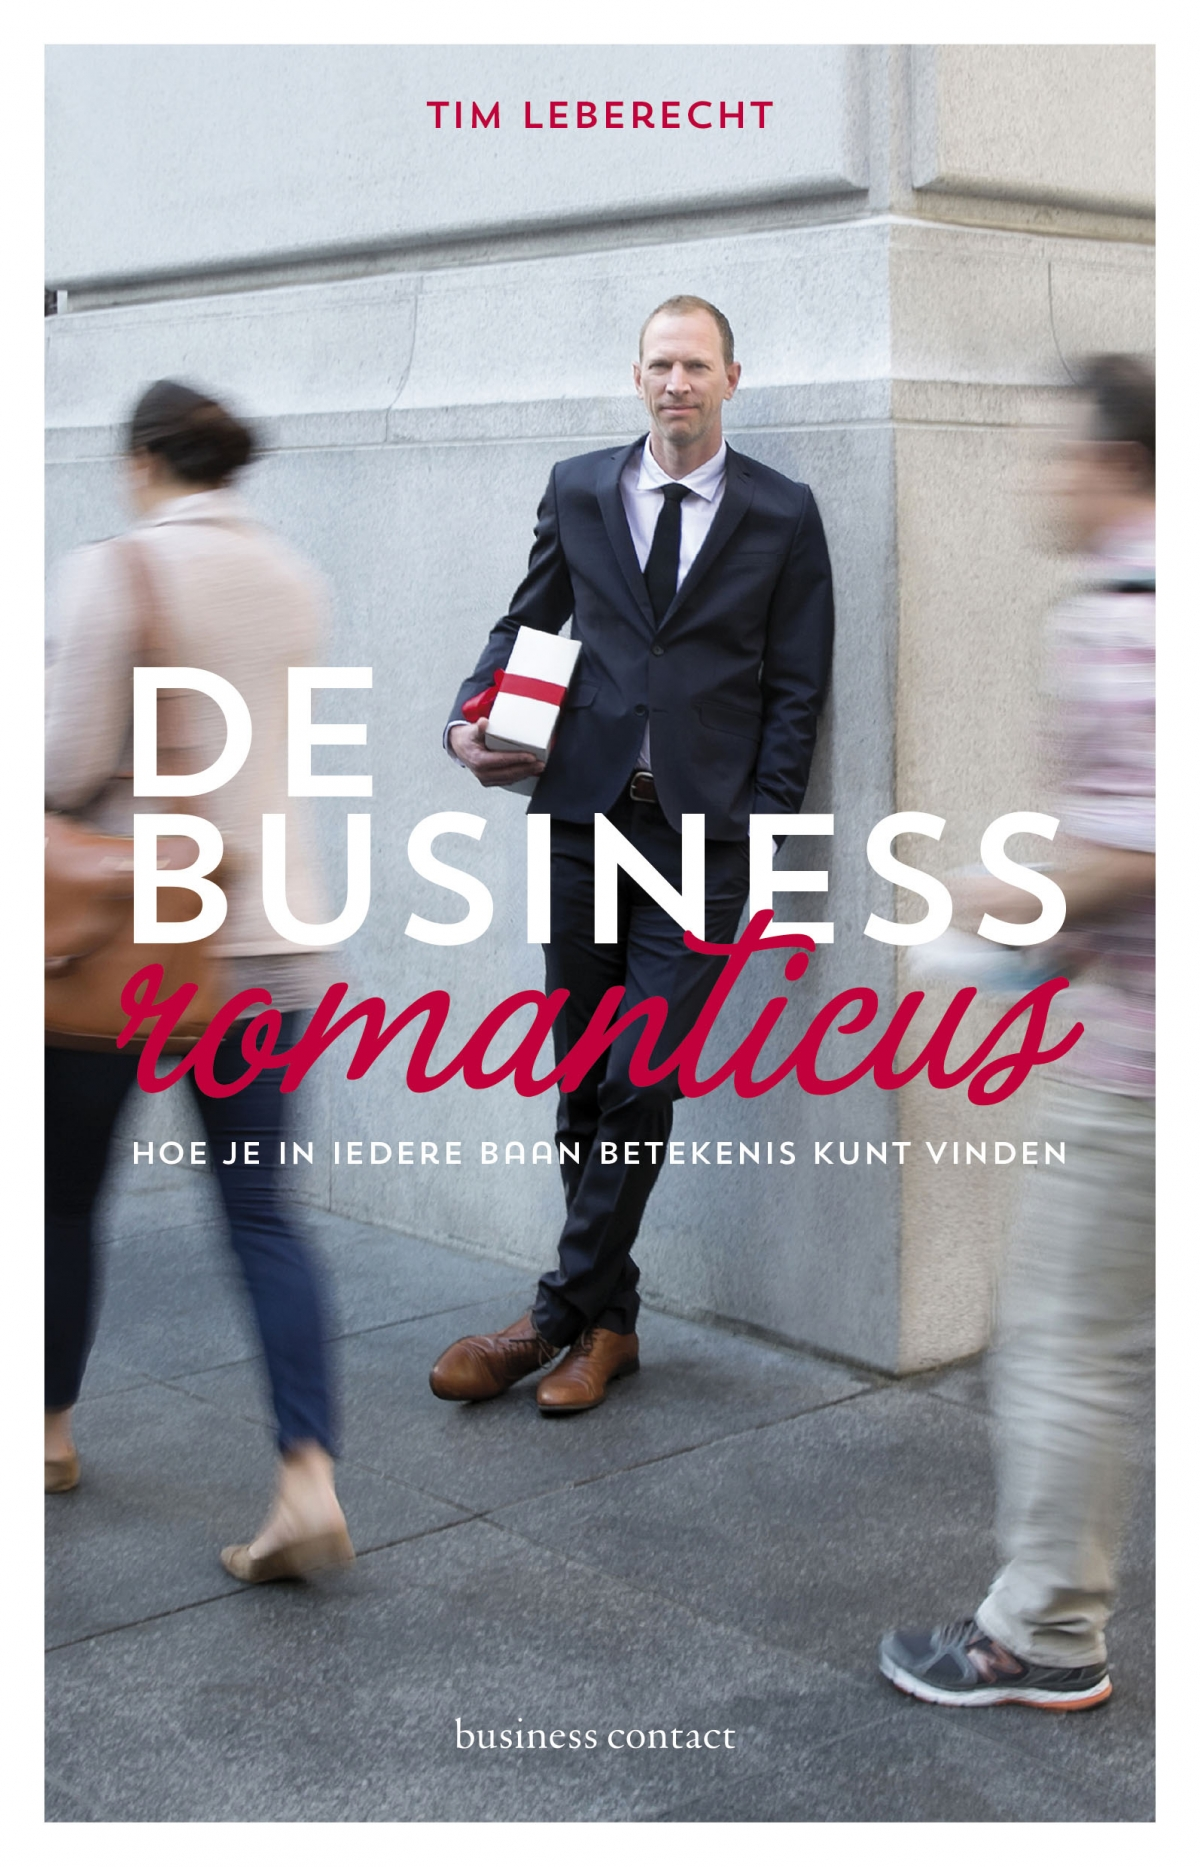 De businessromanticus - Tim Leberecht